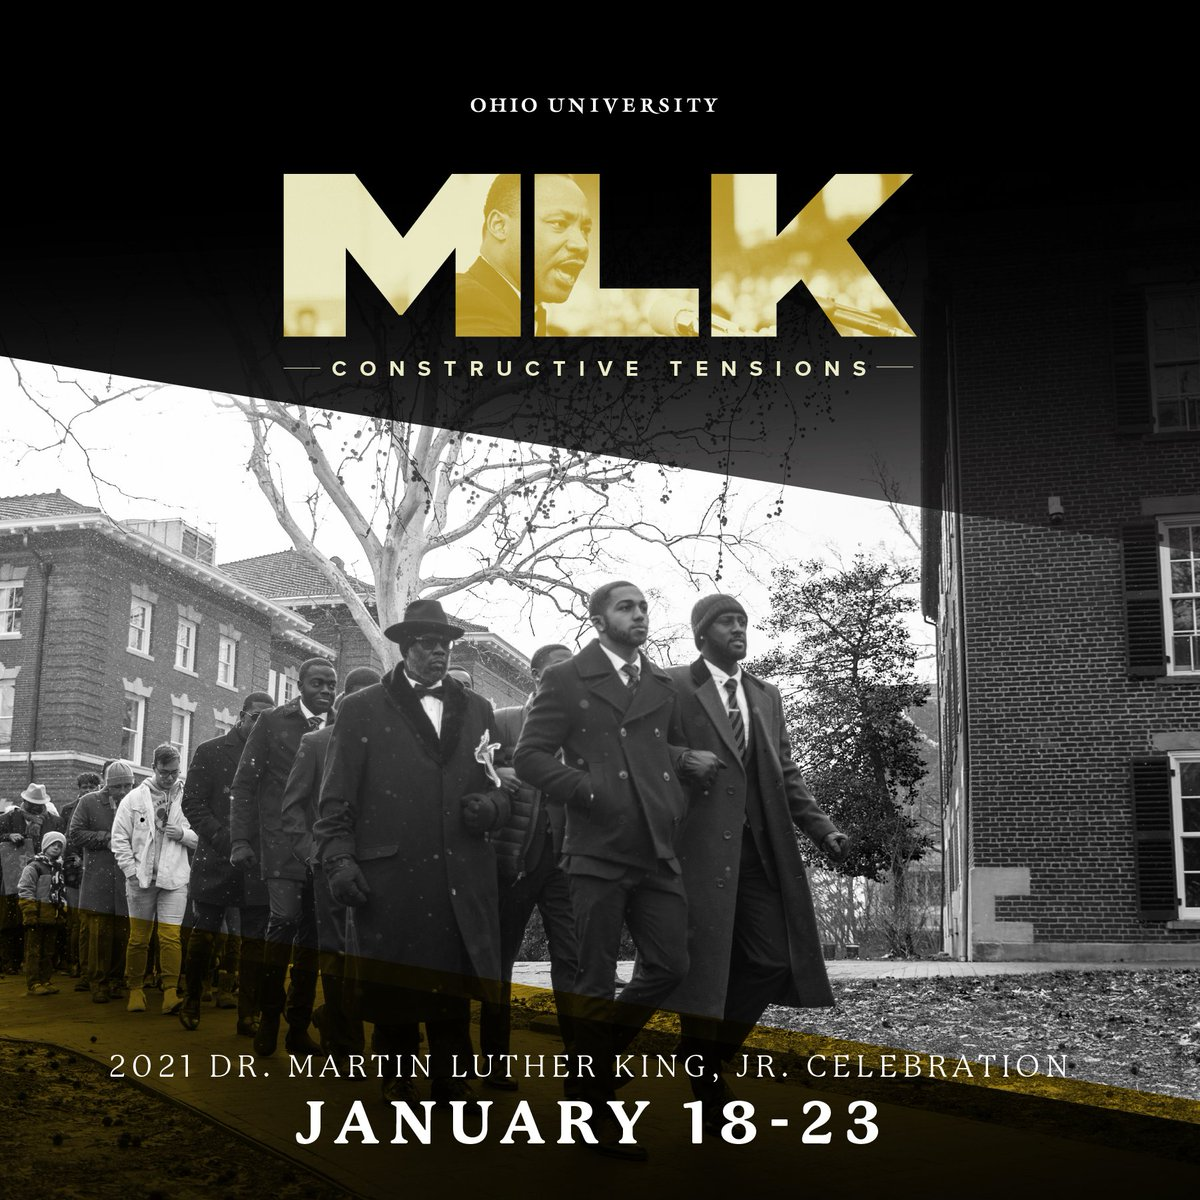 """The 2021 Martin Luther King, Jr. celebration theme at OHIO is """"Constructive Tensions.""""  The inherent presence of constructive tension within our activism helps us grow and gain awareness of our differences, shared struggles and triumphs.  #MLKDay  ➡️ https://t.co/ZJncjAxOt7 https://t.co/rMbUcKfccJ"""